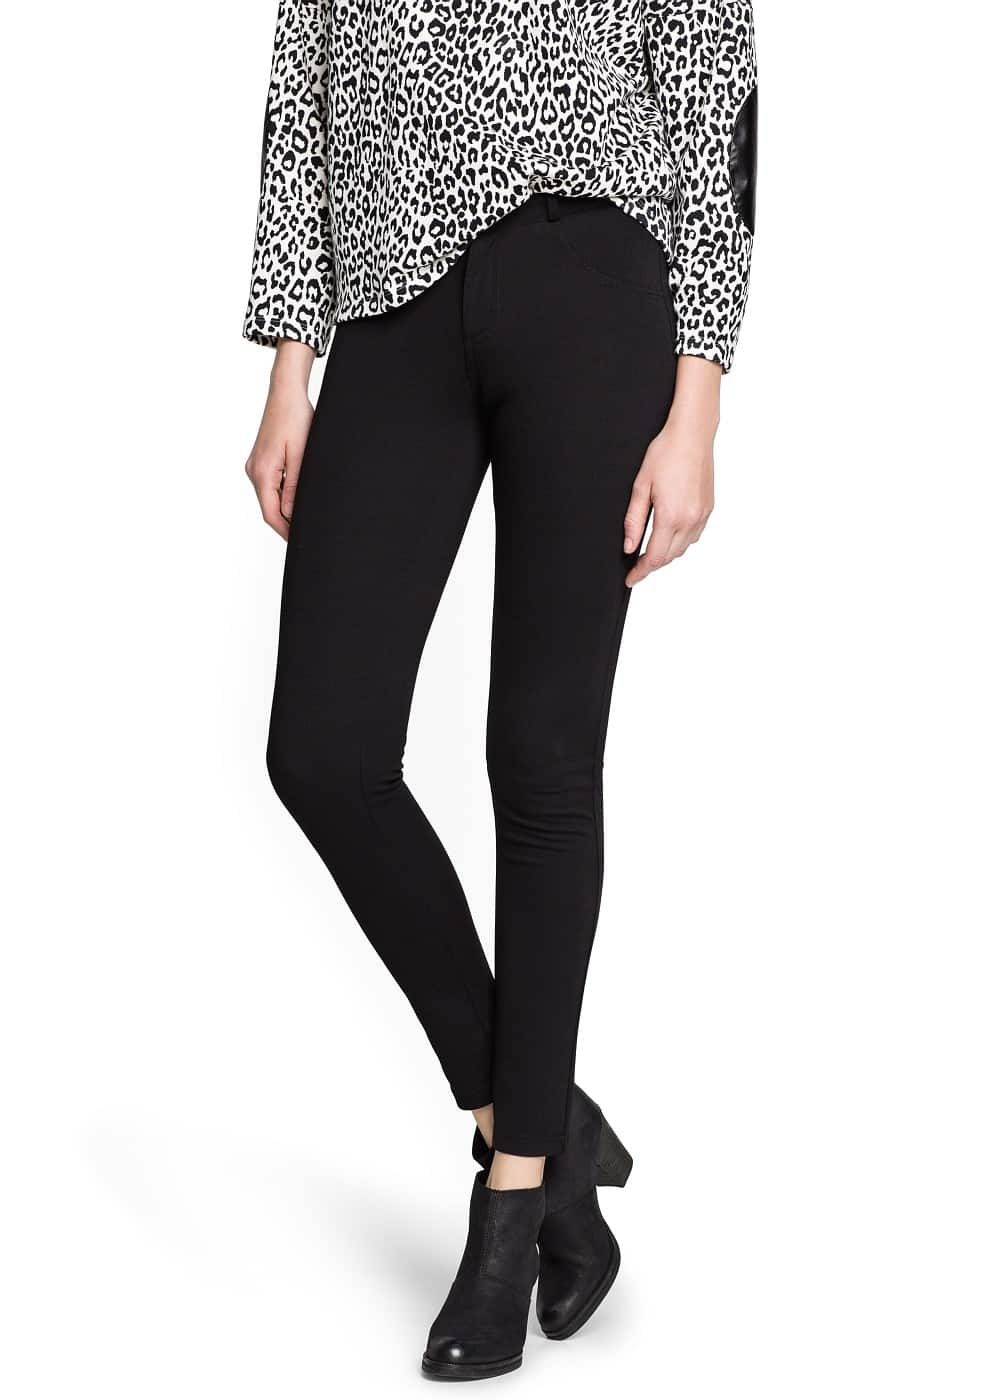 Super-slim stretch trousers